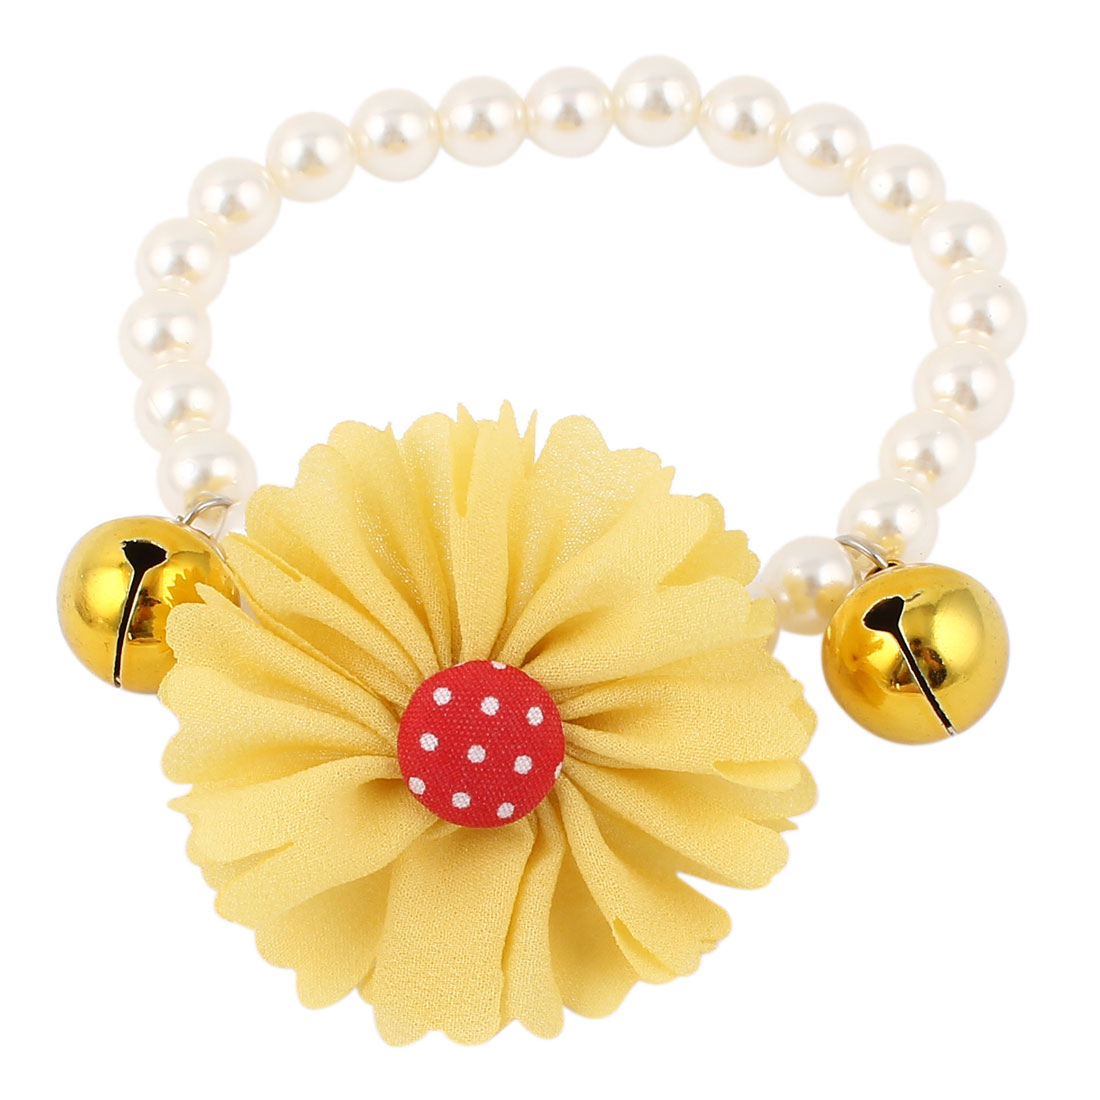 Metal Bell Pendant Flower Accent Pet Dog Plastic Beads Imitation Pearls Collar Necklace White Yellow S